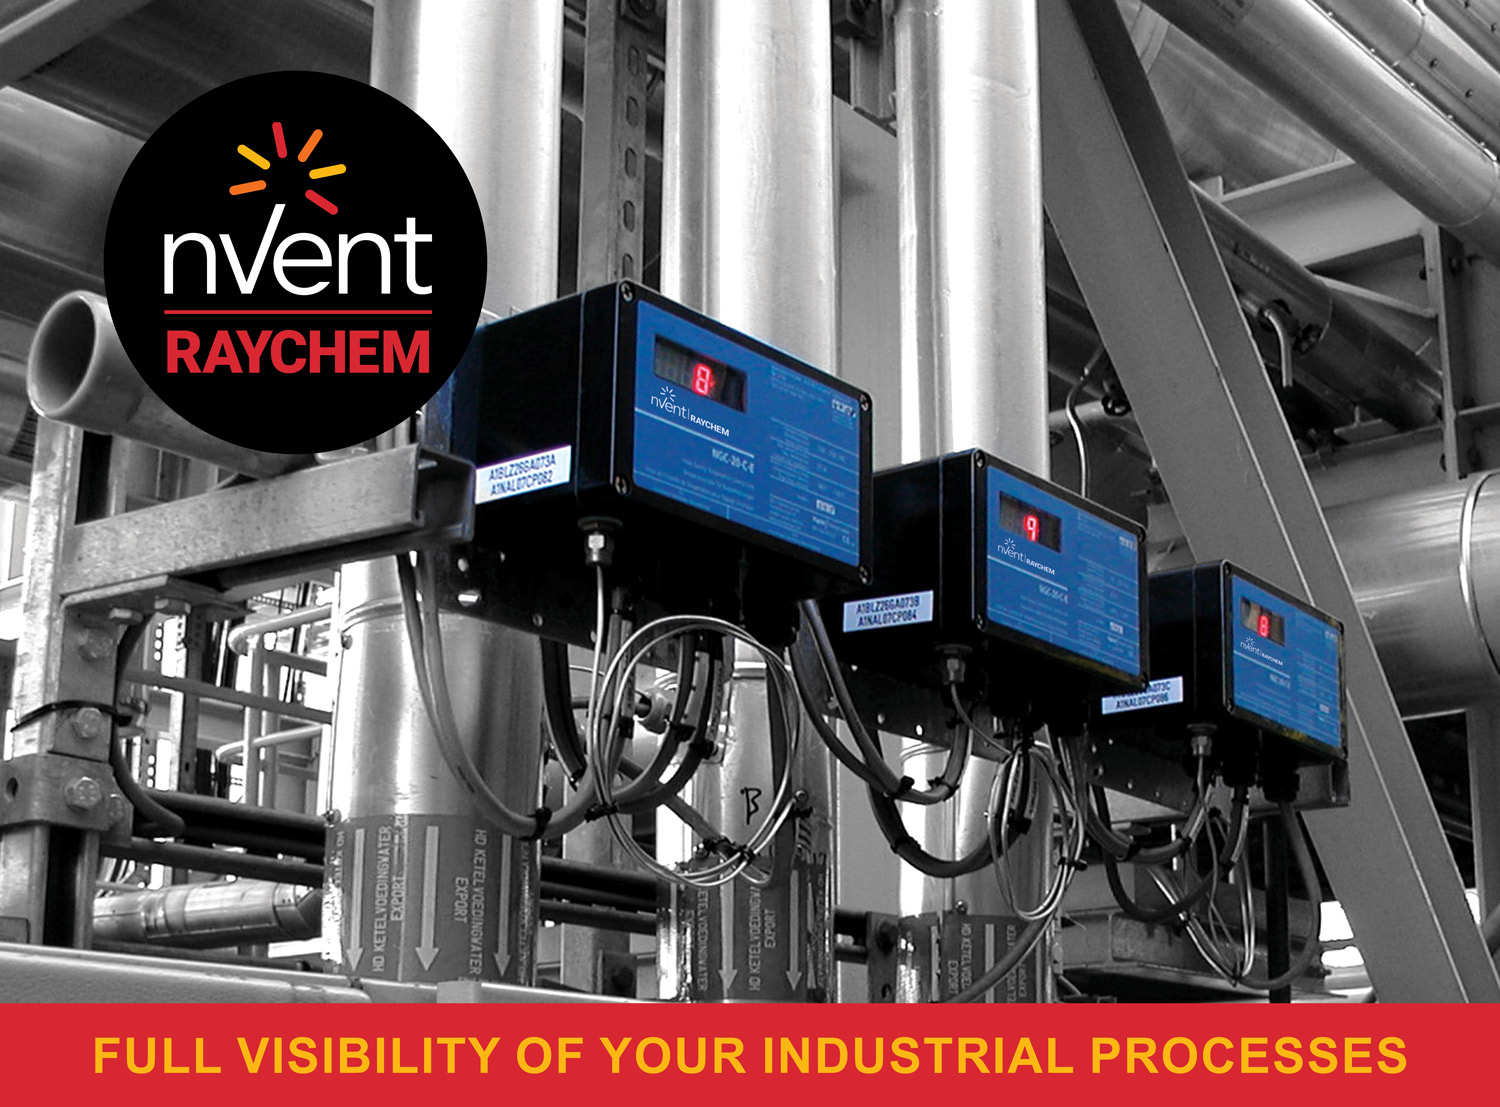 New Nvent Raychem Control Amp Monitoring Solutions Advance